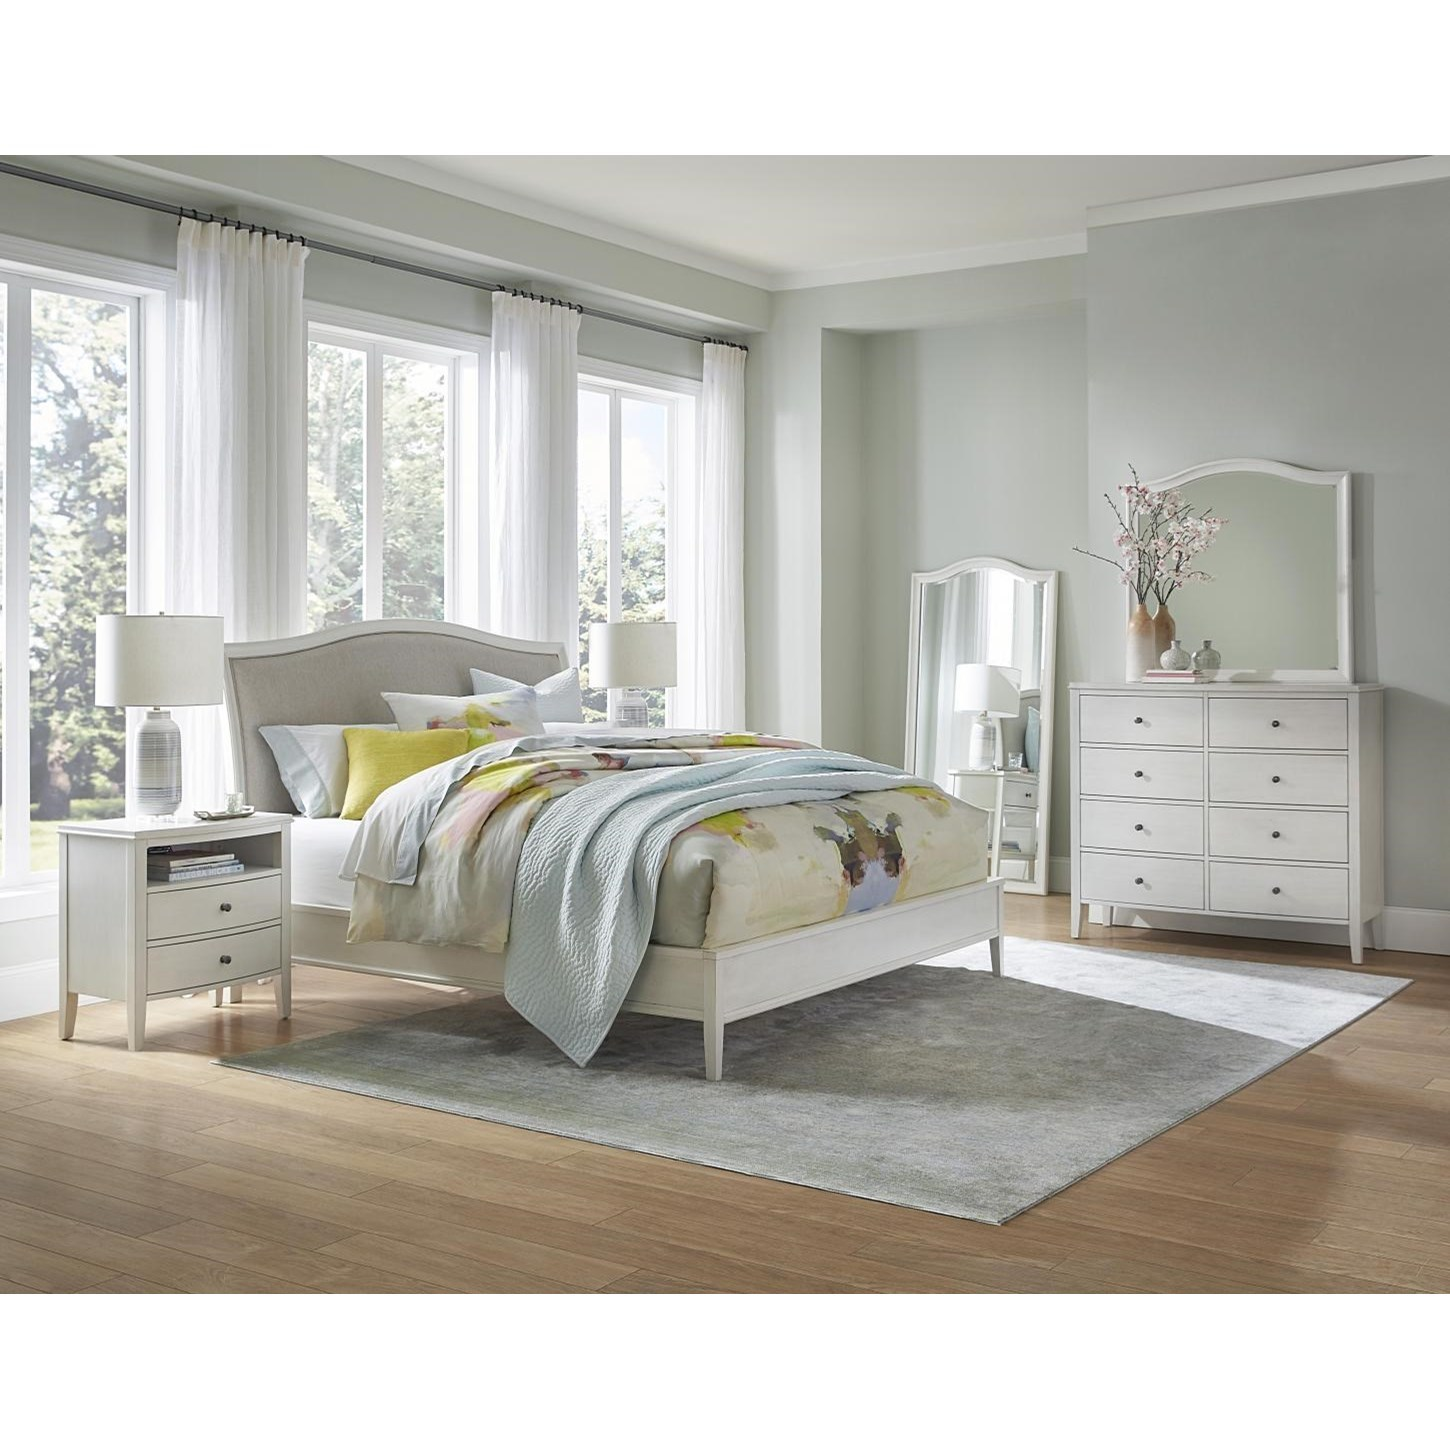 Charlotte  Queen Bedroom Group  by Aspenhome at Stoney Creek Furniture